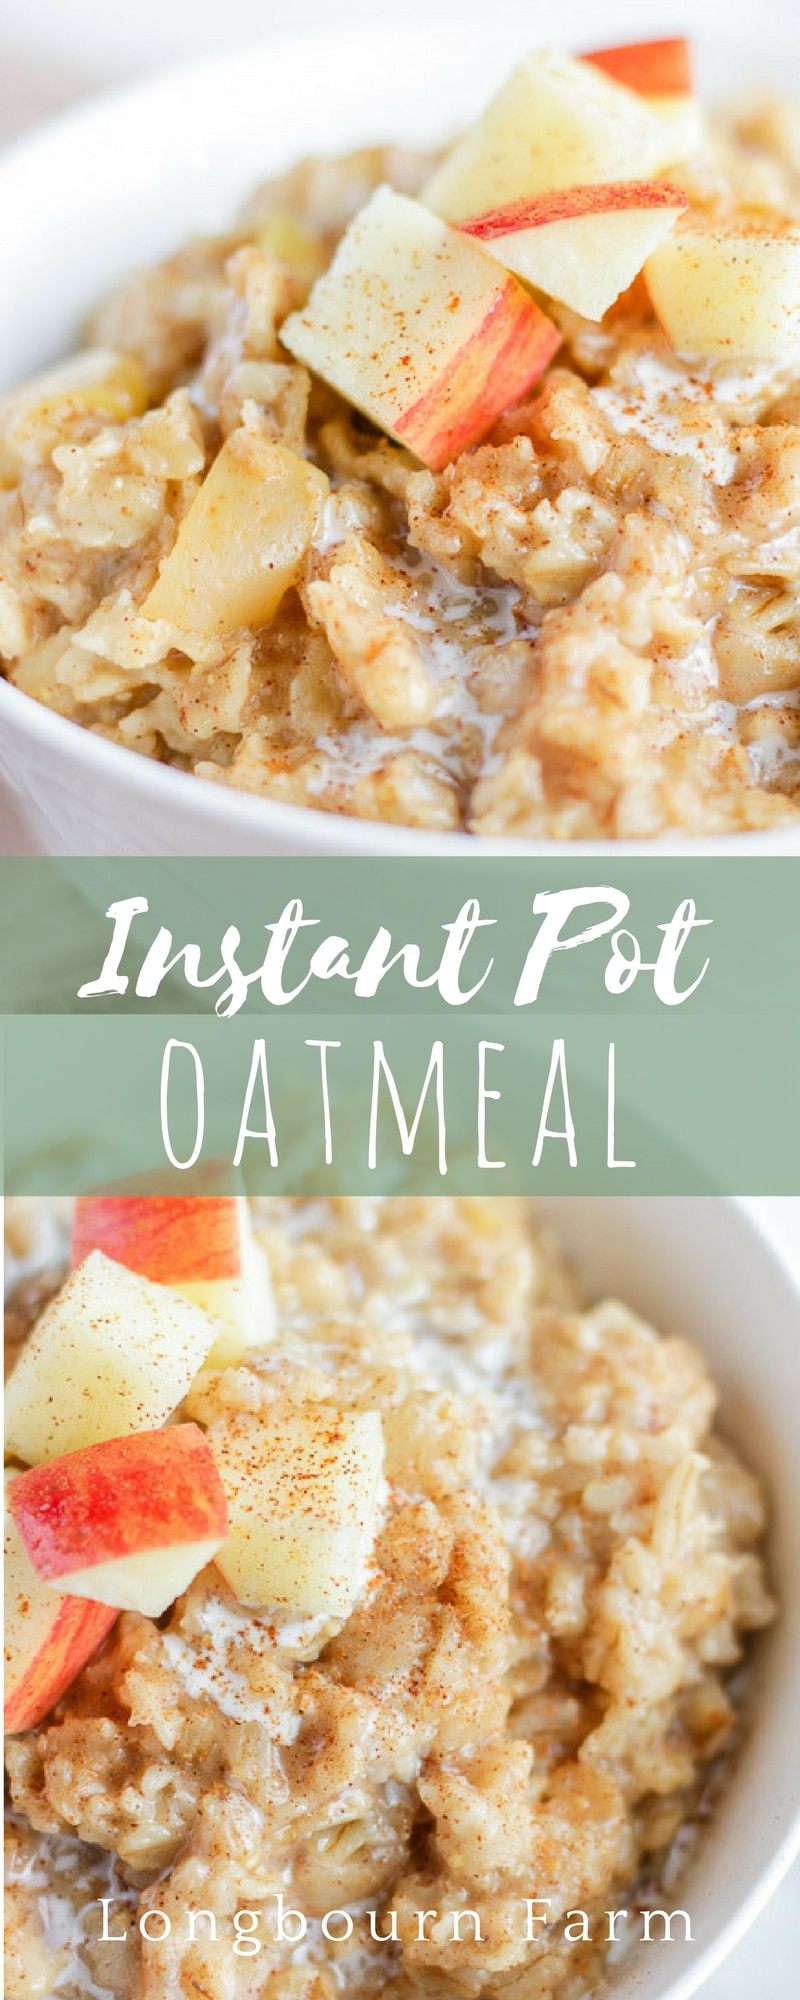 Apple cinnamon Instant Pot Oatmeal is a delicious breakfast that cooks in just 3 minutes! An easily customizable base oatmeal recipe that is easy to make and keep warm before the kids wake up for a good breakfast on a busy morning!